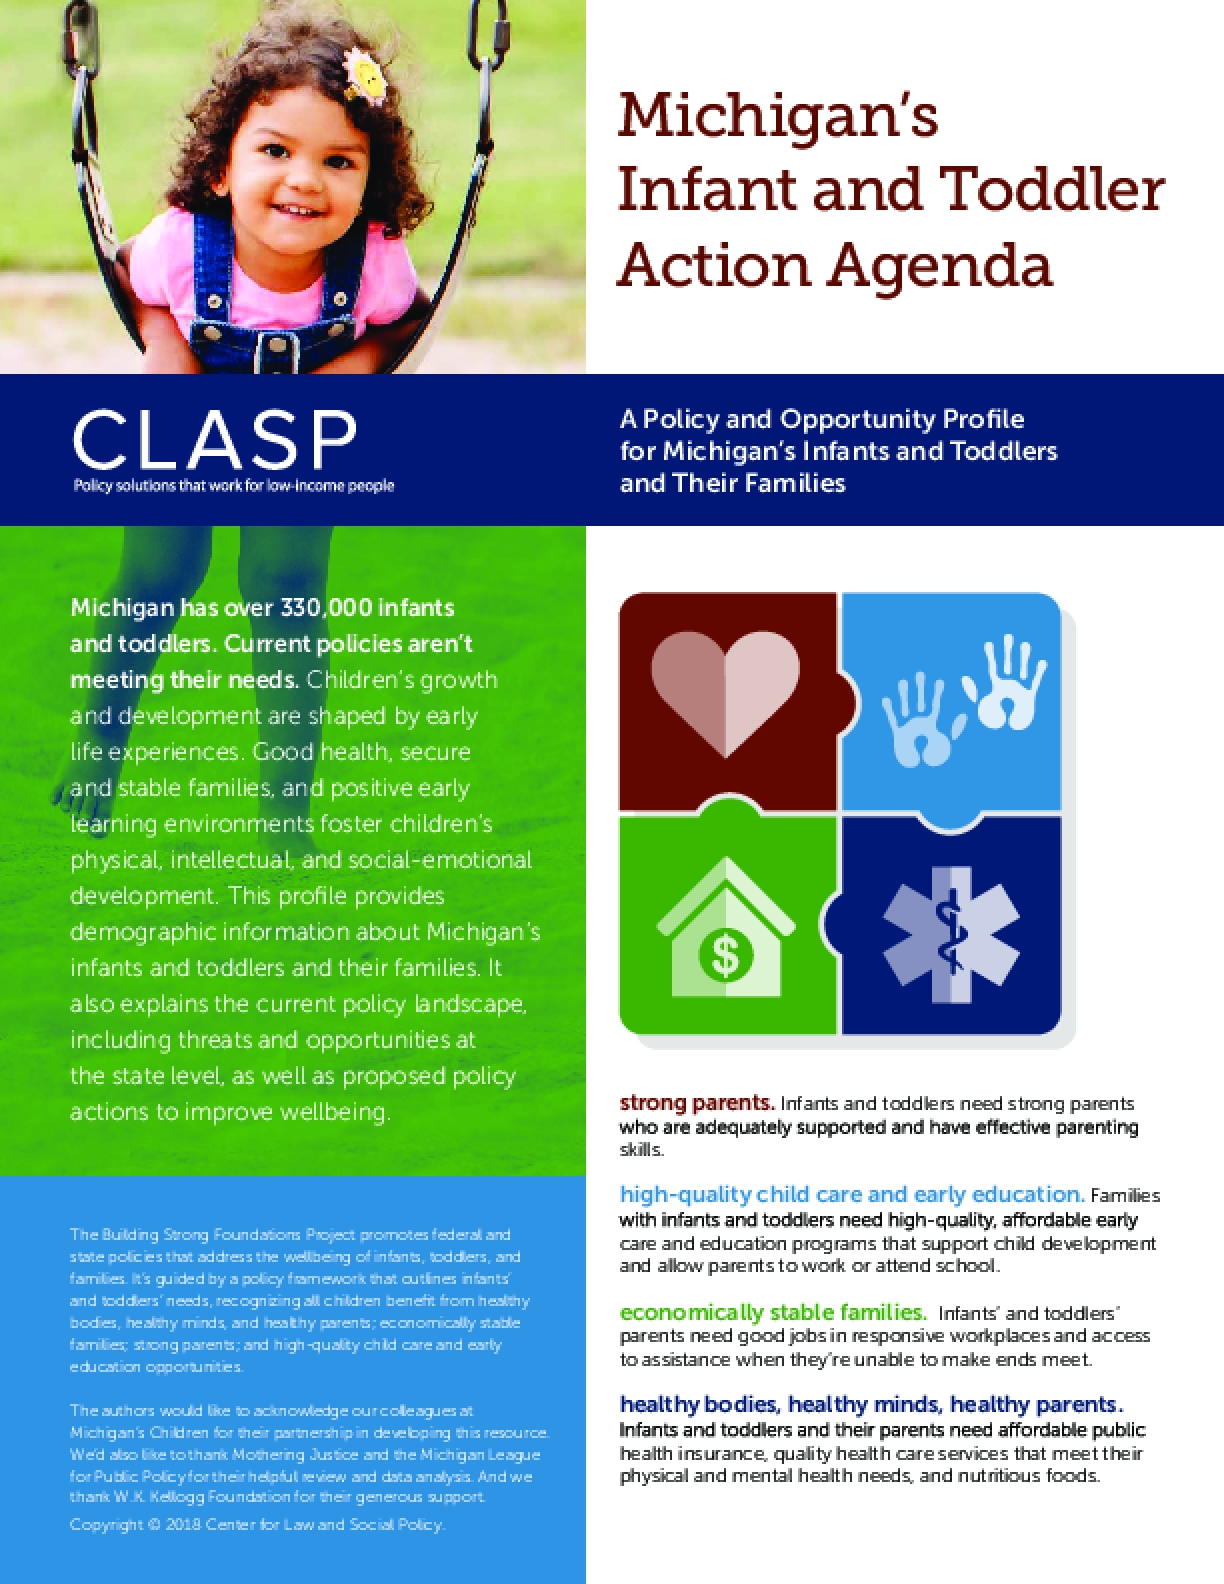 Michigan's Infant and Toddler Action Agenda: A Policy and Opportunity Profile for Michigan's Infants and Toddlers and Their Families